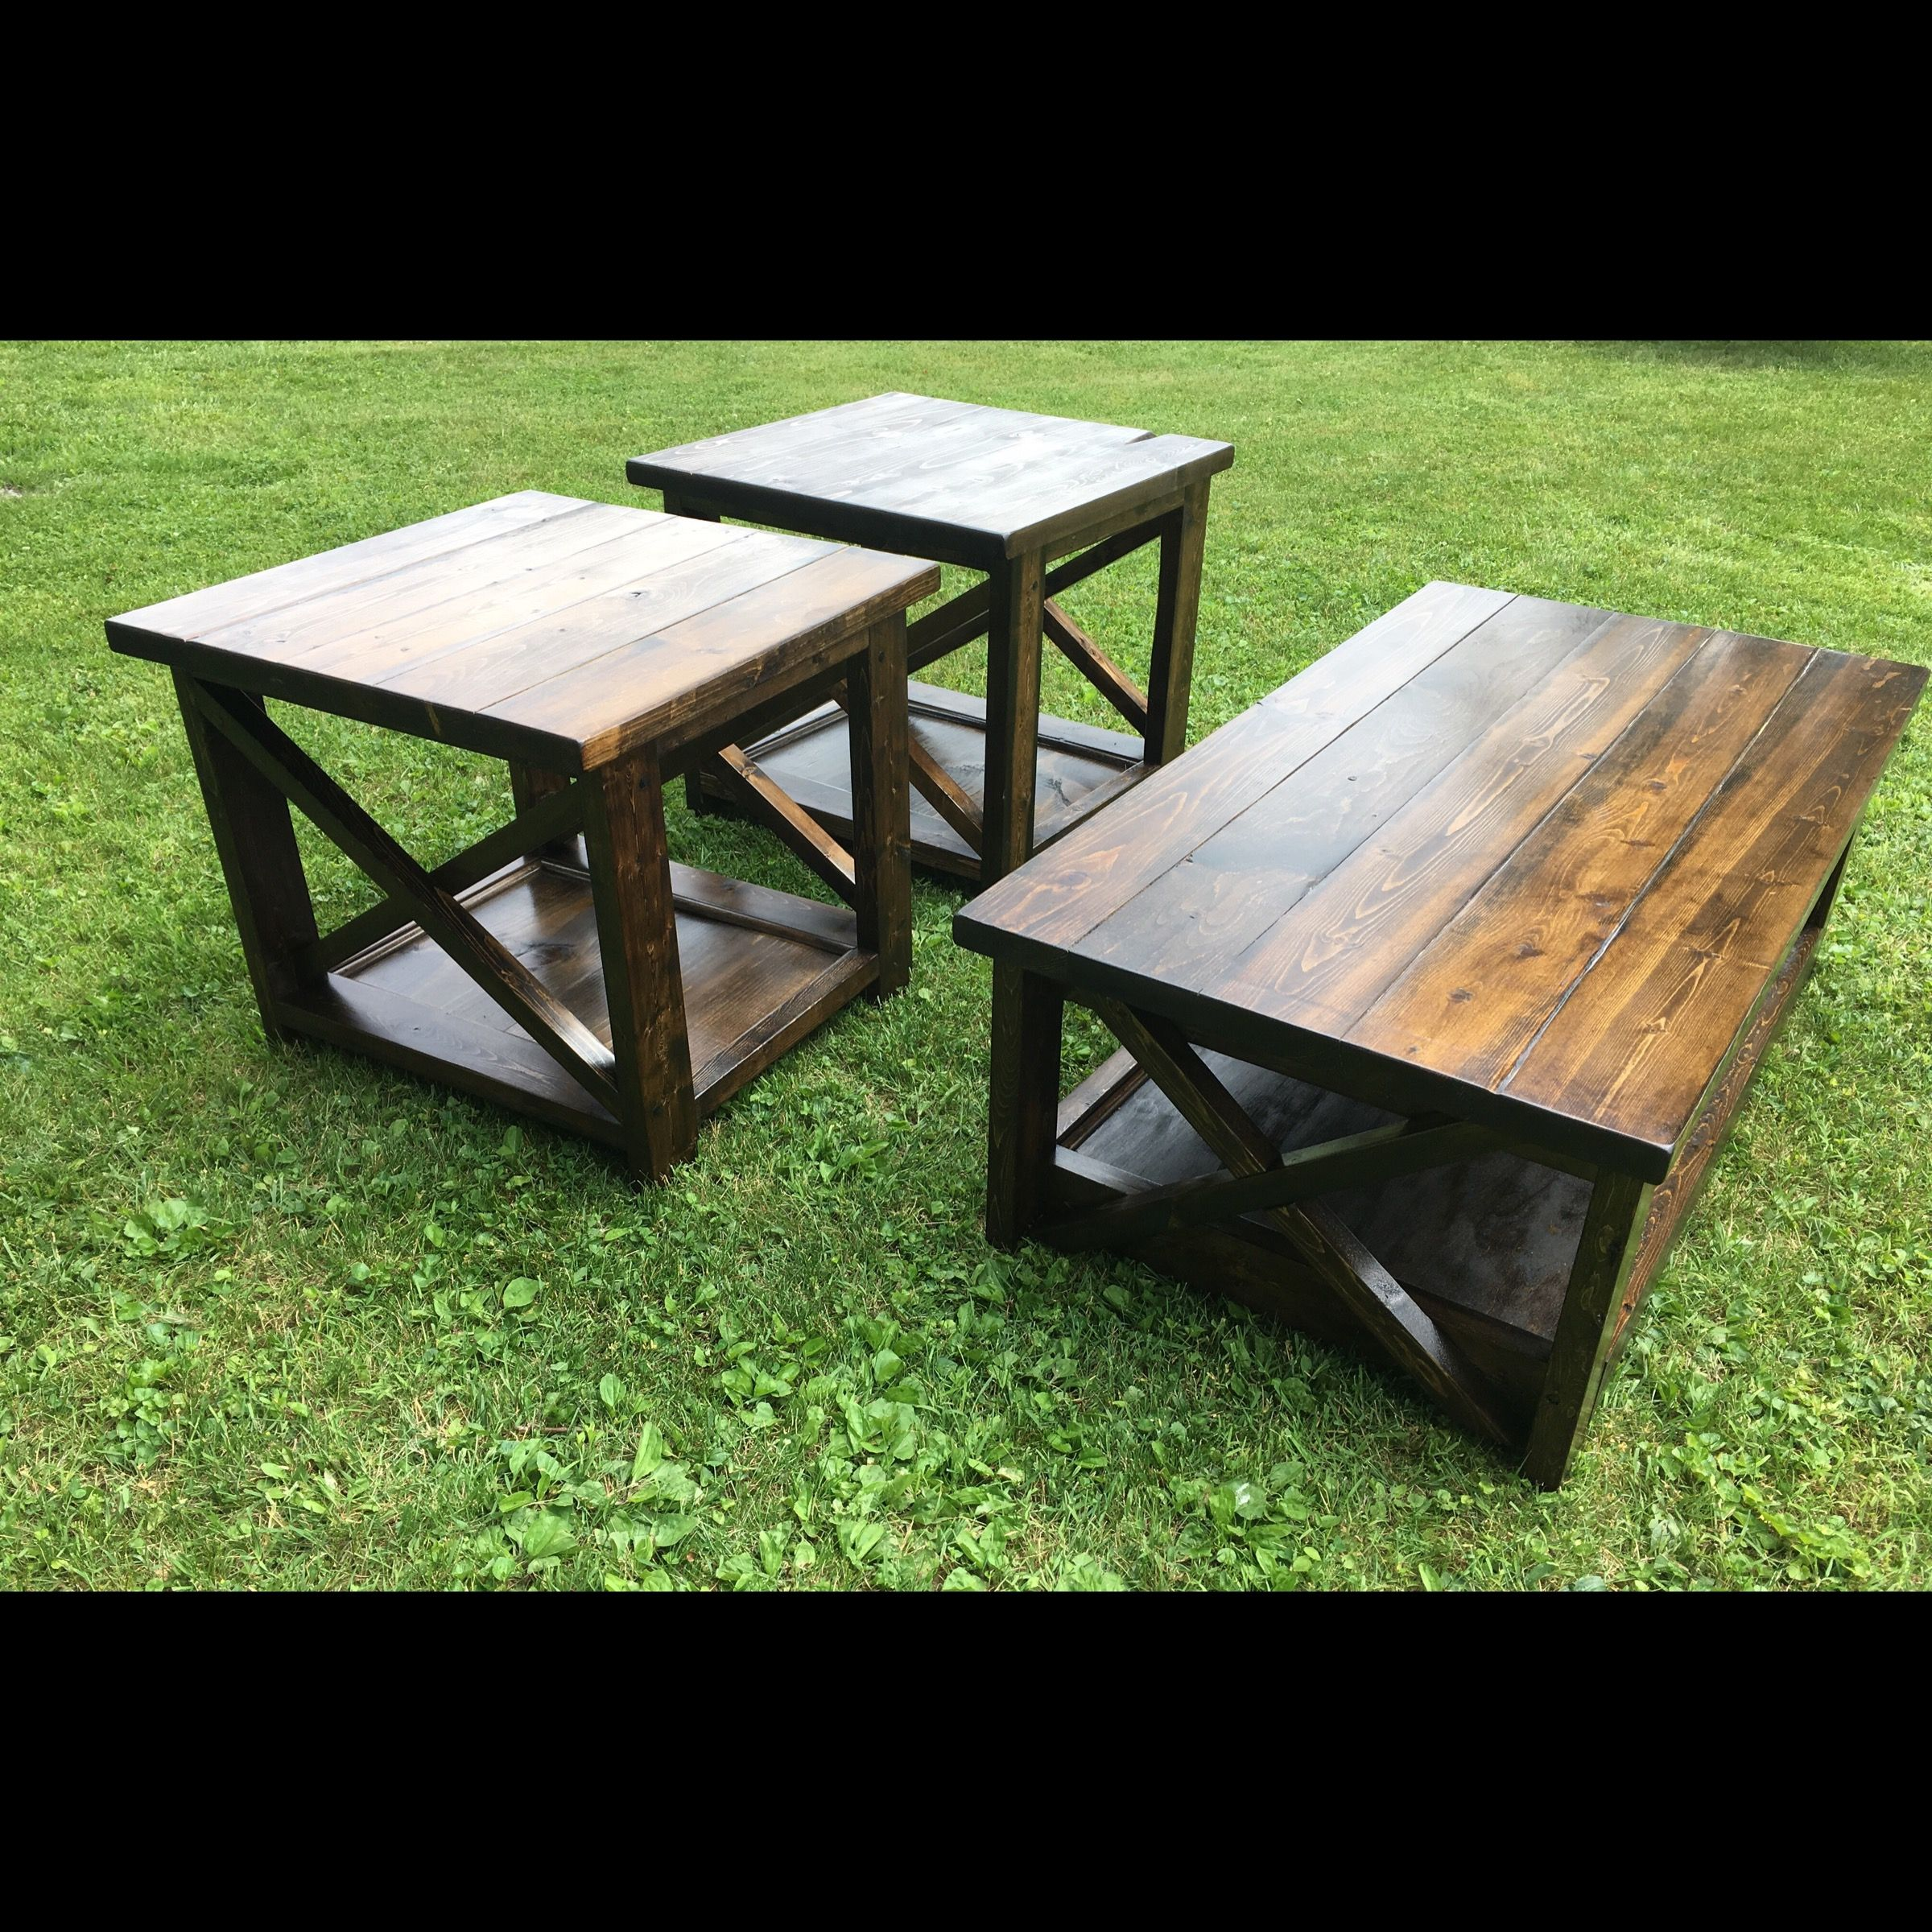 rustic coffee table with matching end tables backyard diy pallet garden furniture chairside accent glass top outdoor modern lamp sango dishes high console leg kit metal bench legs